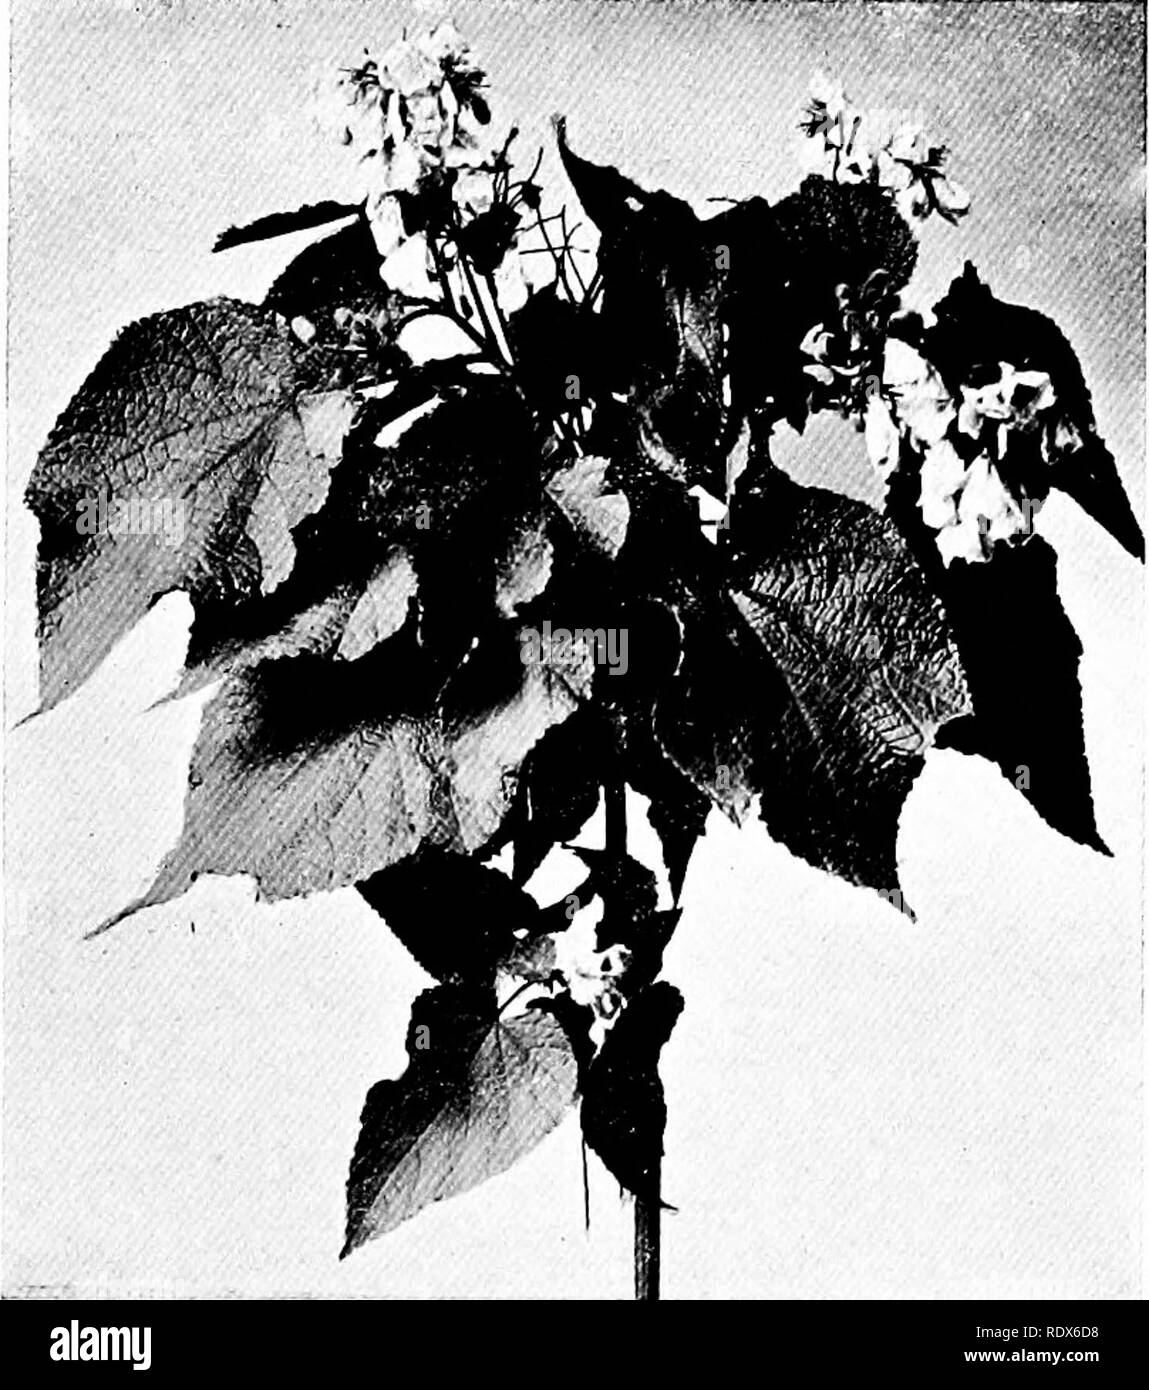 ". The flora of the Algeria. Botany. ""Wigandia ,Vigieri NO — Hydrophyllaceee Tall herbs with large hairy leaves and dark blue flowers.. Sparmannia Africana NO— Tiliaceas Handsome shrub or small tree with conspicuous white Howers. (82.). Please note that these images are extracted from scanned page images that may have been digitally enhanced for readability - coloration and appearance of these illustrations may not perfectly resemble the original work.. Gubb, Alfred S. (Alfred Samuel), 1857-. Alger, Imprimerie Alge?rienne; London, Ballie?re, Tindall & Cox Stock Photo"